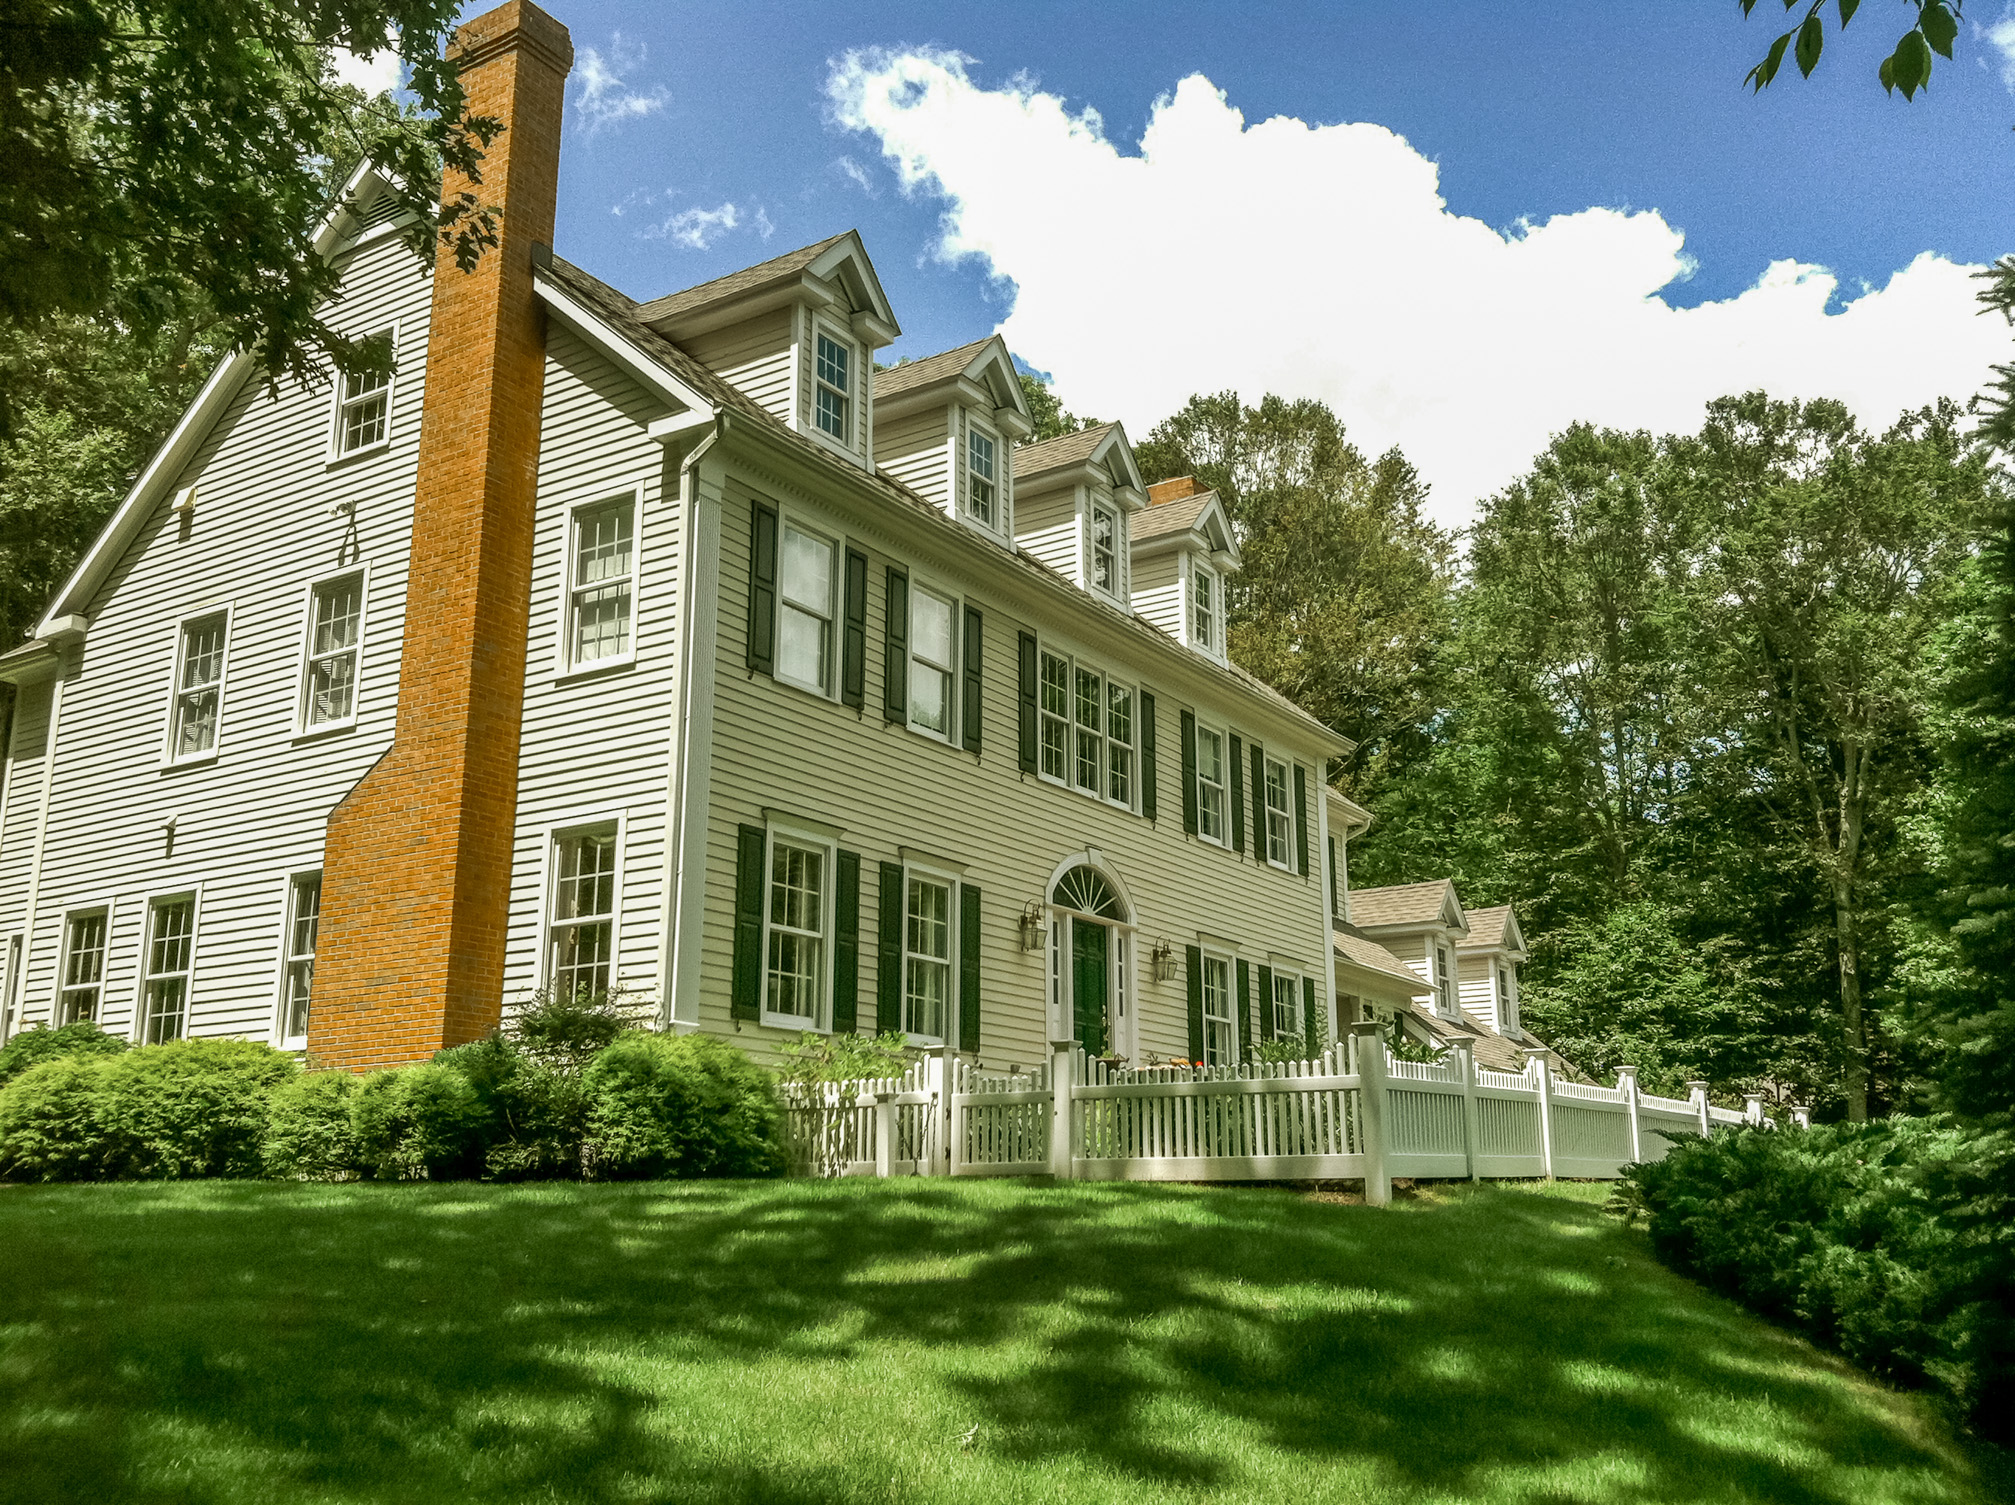 Single Family Home for Sale at Enjoy Every Indulgence! 152 Cheesespring Road Wilton, Connecticut, 06897 United States